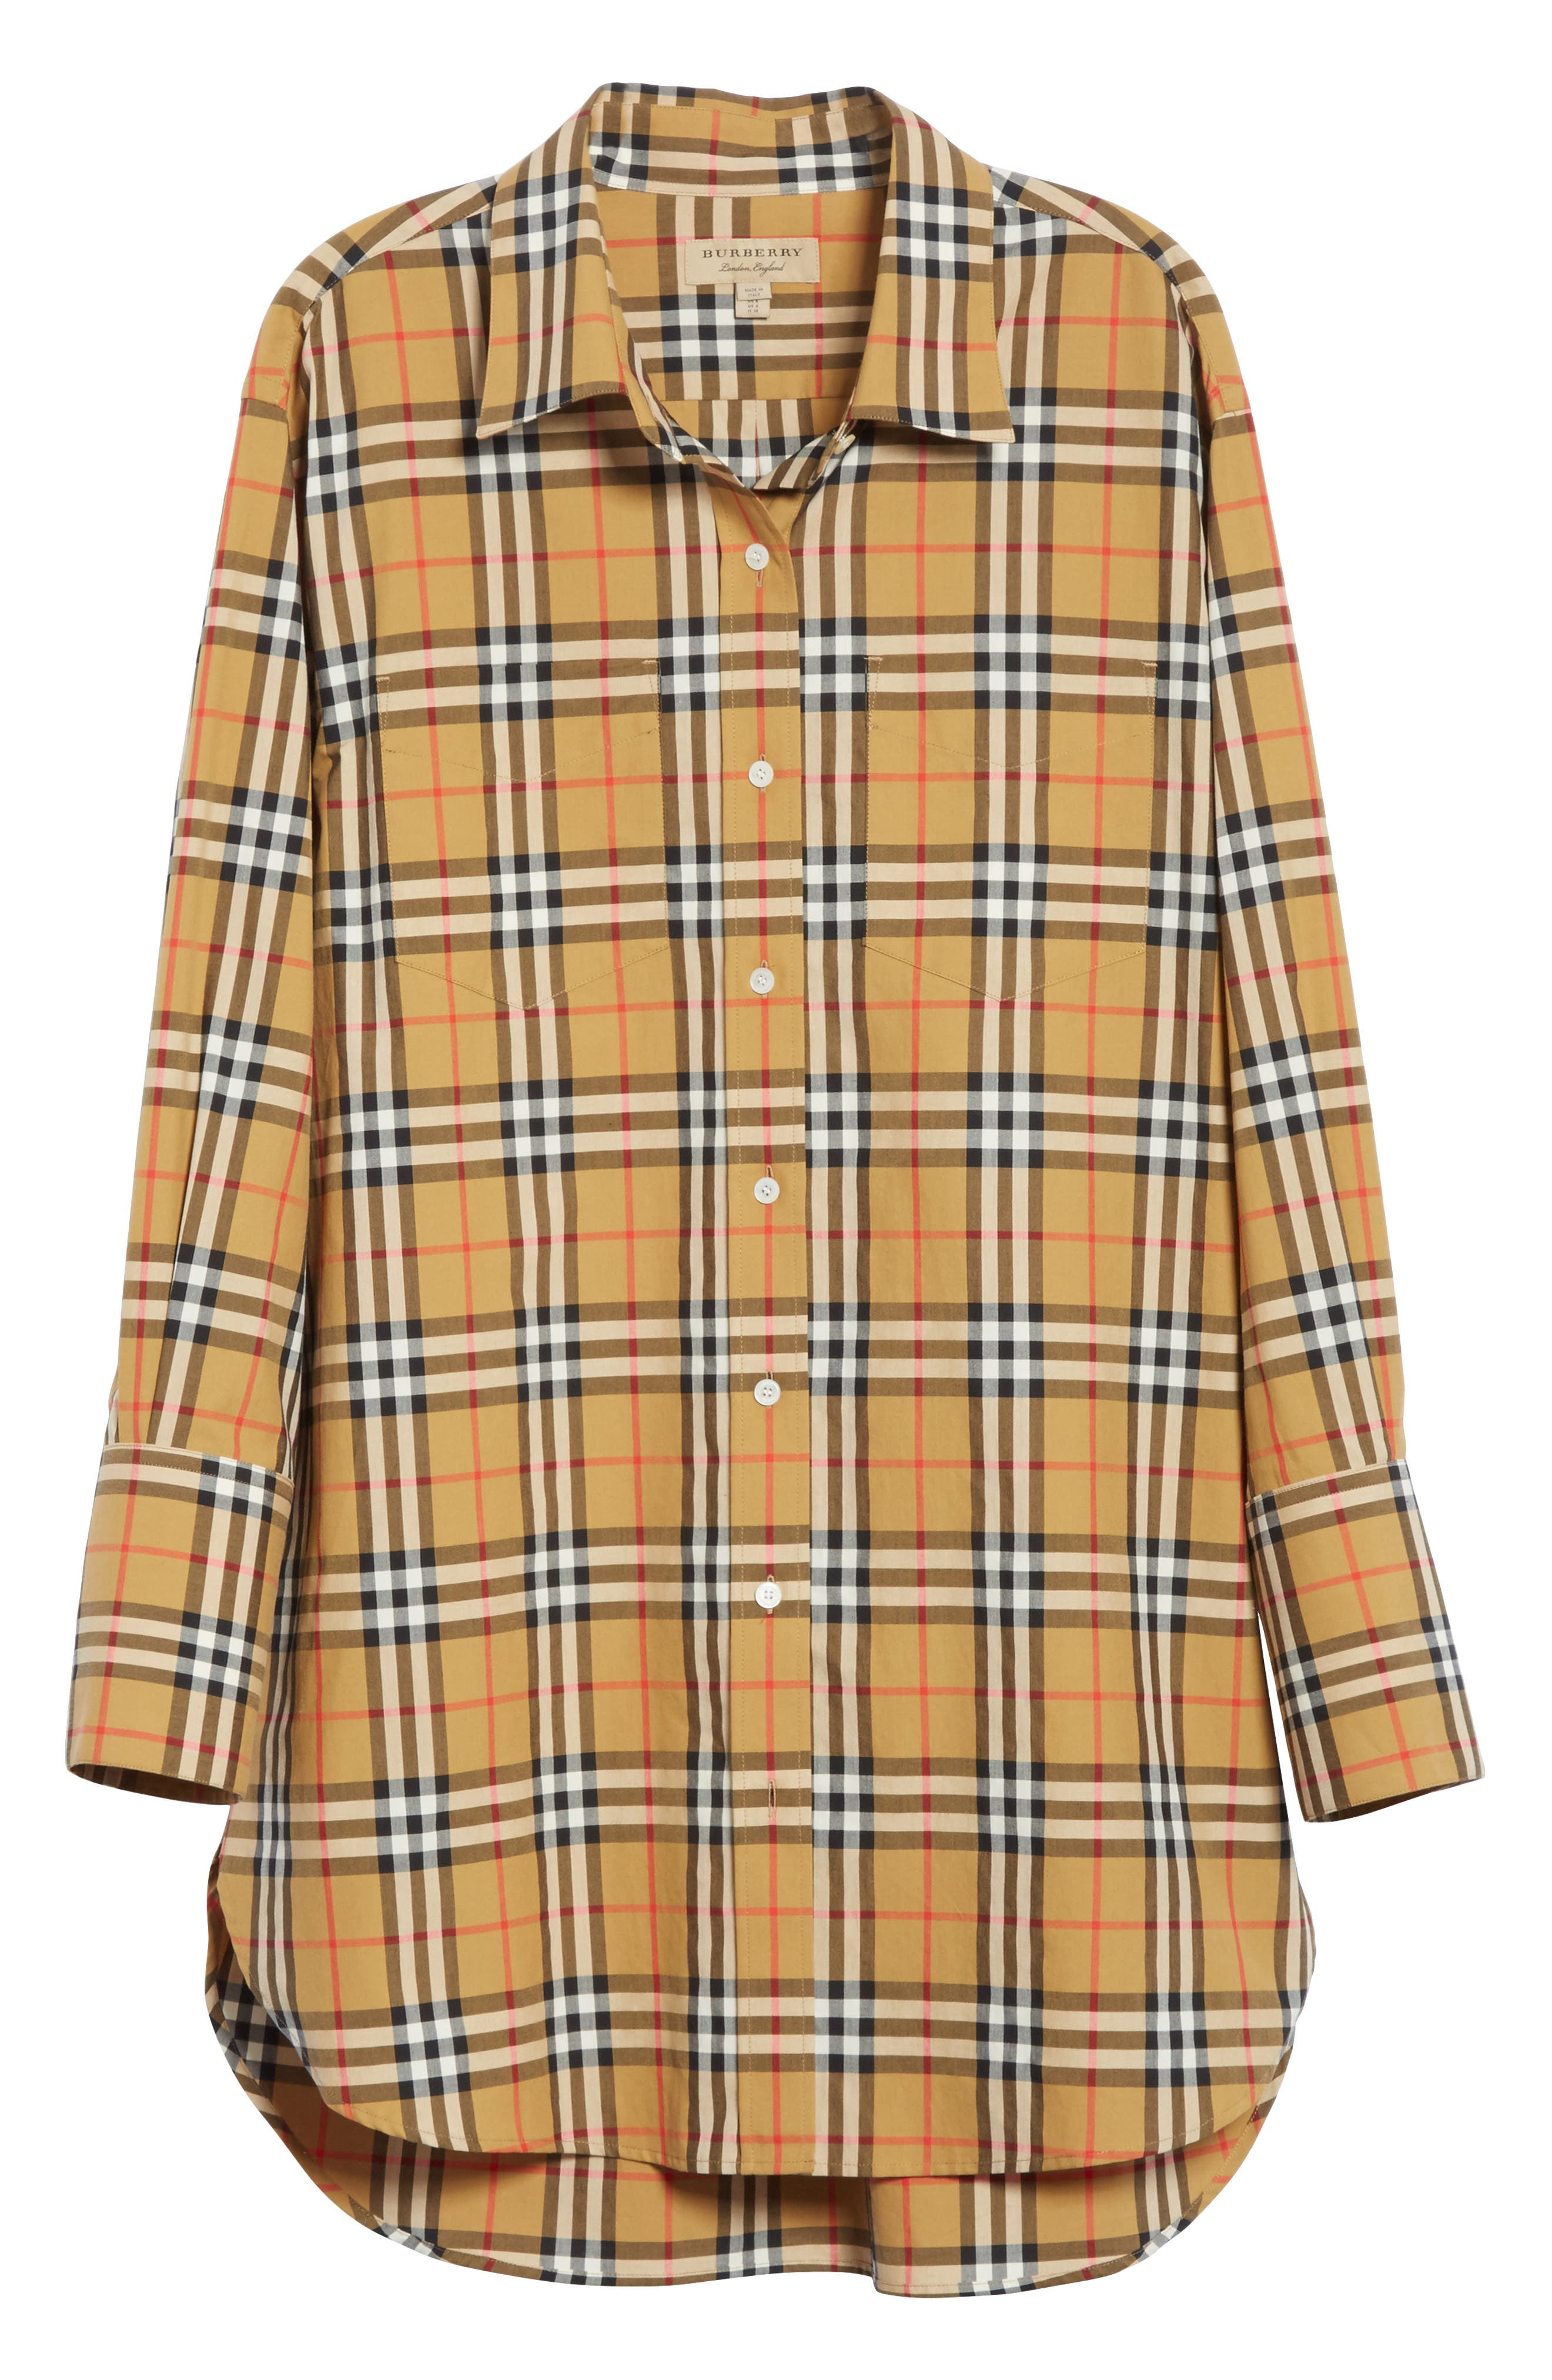 BURBERRY, Redwing Vintage Check Cotton Shirt, Alternate thumbnail 7, color, ANTIQUE YELLOW